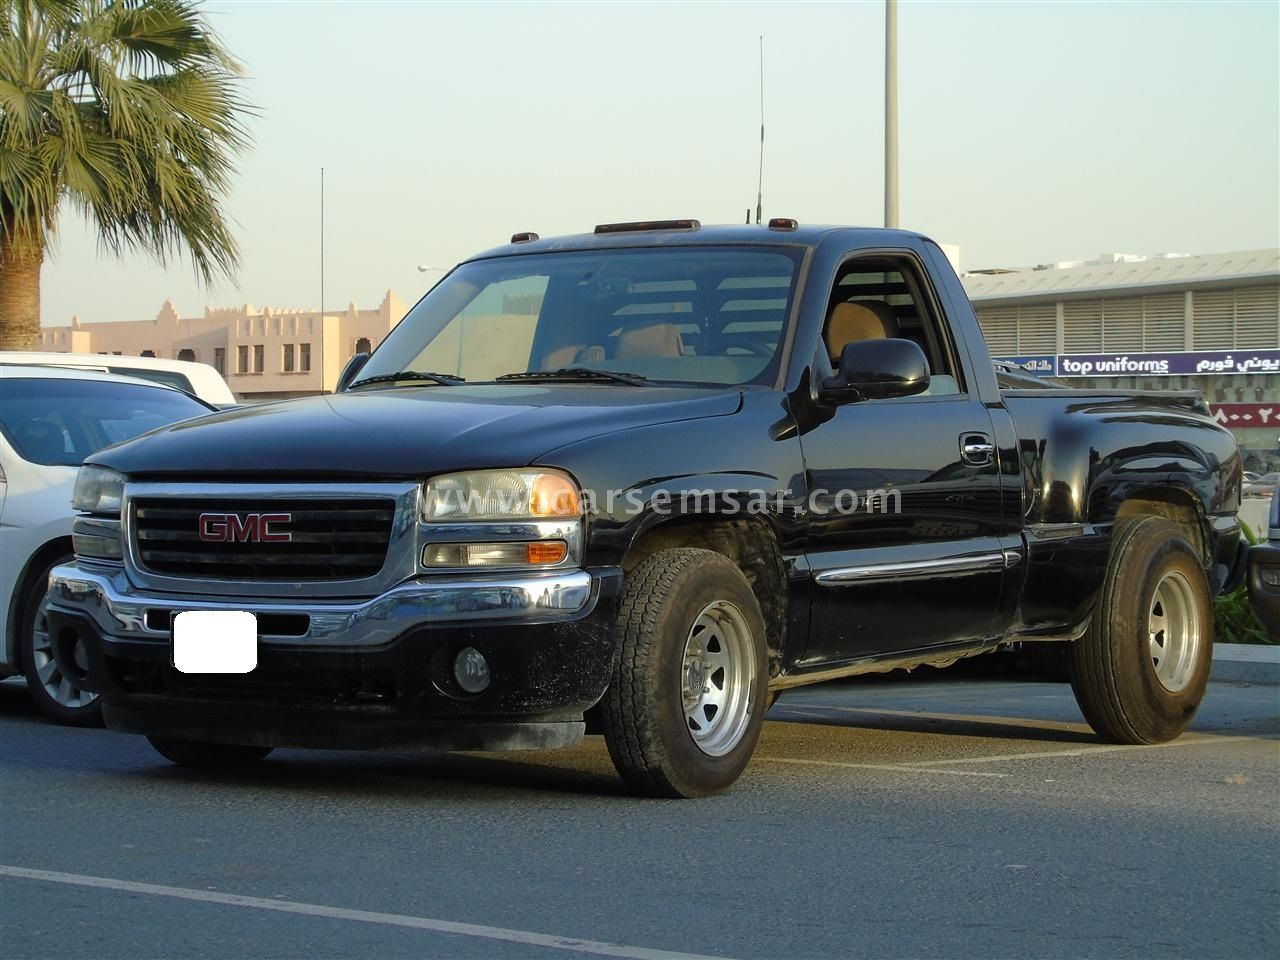 2006 Gmc Sierra 1500 Regular Cab For Sale In Qatar New And Used Cars For Sale In Qatar